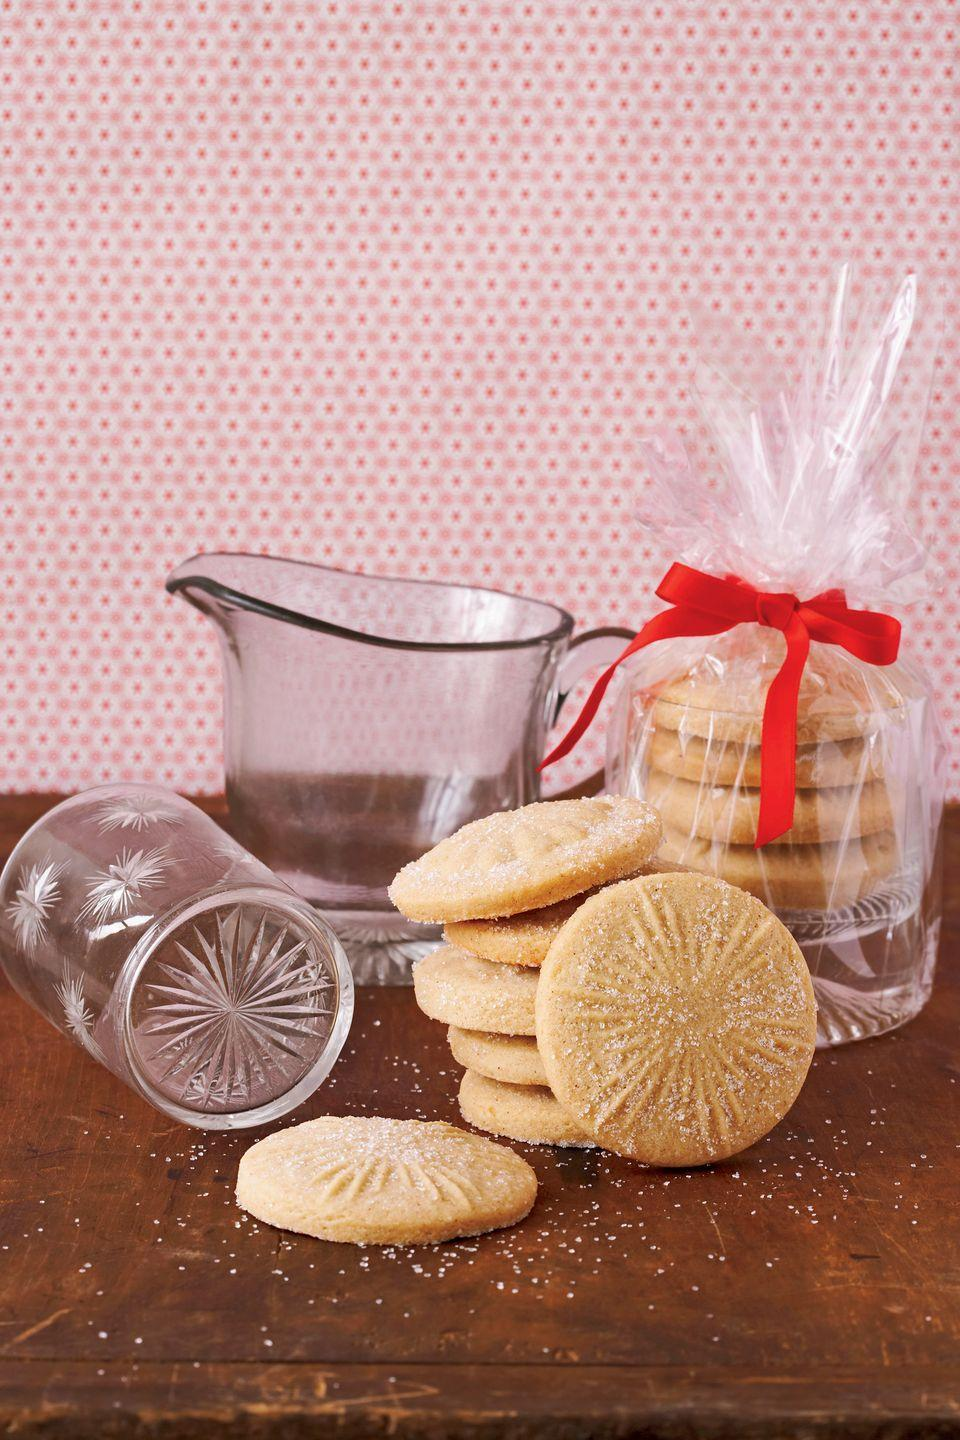 "<p>Simplify your holiday baking this season: With just one dough recipe, you can create dozens of distinctive cookies. During the holidays, an edible gift is always appreciated—and never returned! </p><p><strong><a href=""https://www.countryliving.com/food-drinks/recipes/a2022/sugar-cookie-dough-clv1207/"" rel=""nofollow noopener"" target=""_blank"" data-ylk=""slk:Get the recipe"" class=""link rapid-noclick-resp"">Get the recipe</a>.</strong></p><p><strong><a class=""link rapid-noclick-resp"" href=""https://www.amazon.com/KitchenBasix-Adjustable-Rolling-Multicolored-Removable/dp/B0728D11SY/?tag=syn-yahoo-20&ascsubtag=%5Bartid%7C10050.g.2777%5Bsrc%7Cyahoo-us"" rel=""nofollow noopener"" target=""_blank"" data-ylk=""slk:SHOP ROLLING PINS"">SHOP ROLLING PINS</a></strong></p>"